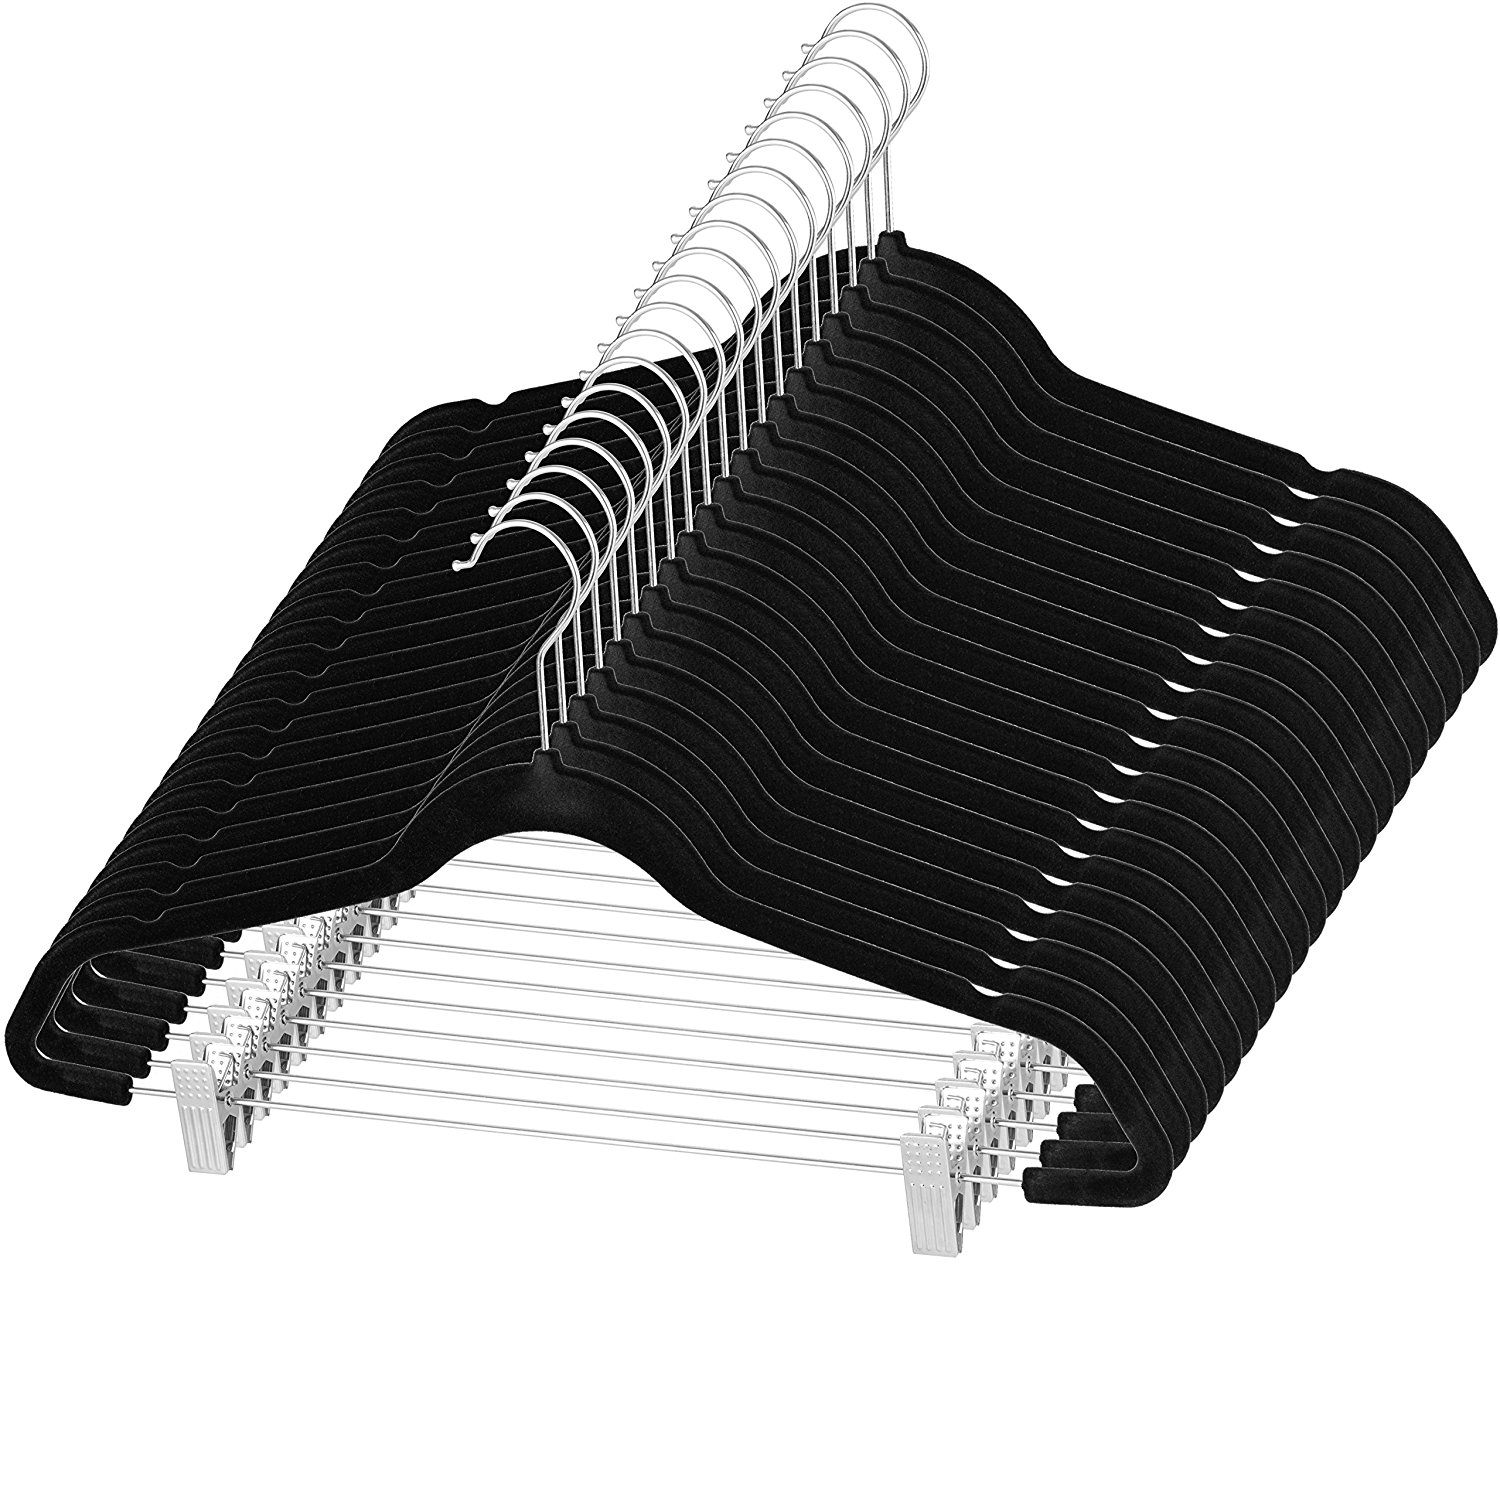 """Zober Velvet Pants Hangers with Metal Clips 17 ¾"""" x 9 ½"""", Strong and Durable 360 Degree Chrome Swivel Hook - Ultra Thin Non Slip Skirt Hangers, with Notches Set of 20 Black"""